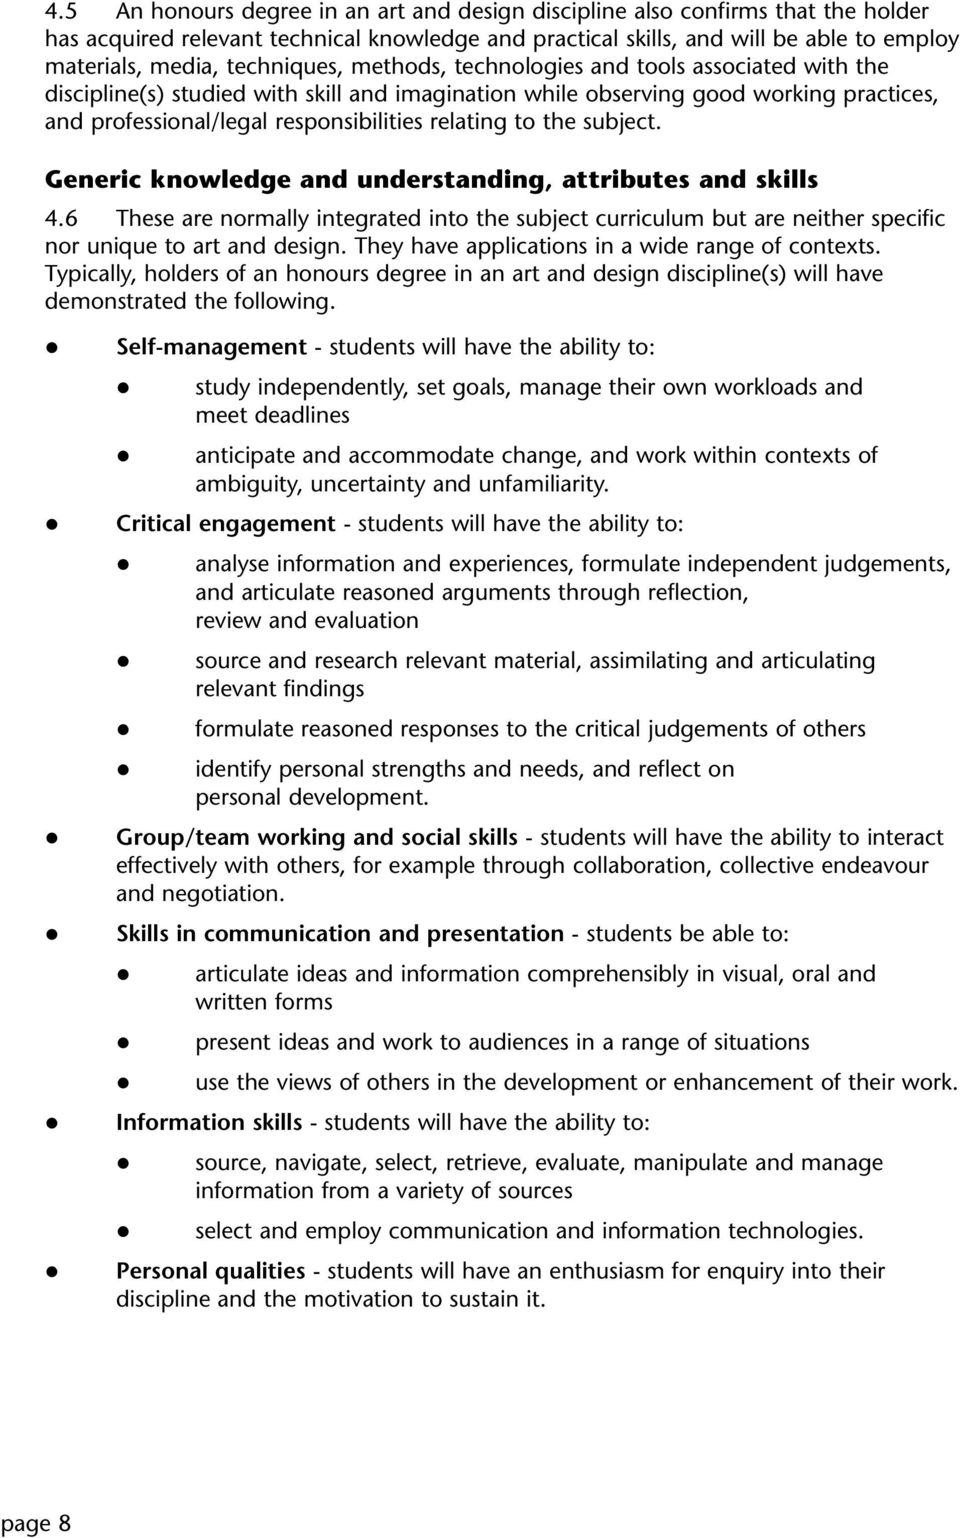 relating to the subject. Generic knowledge and understanding, attributes and skills 4.6 These are normally integrated into the subject curriculum but are neither specific nor unique to art and design.